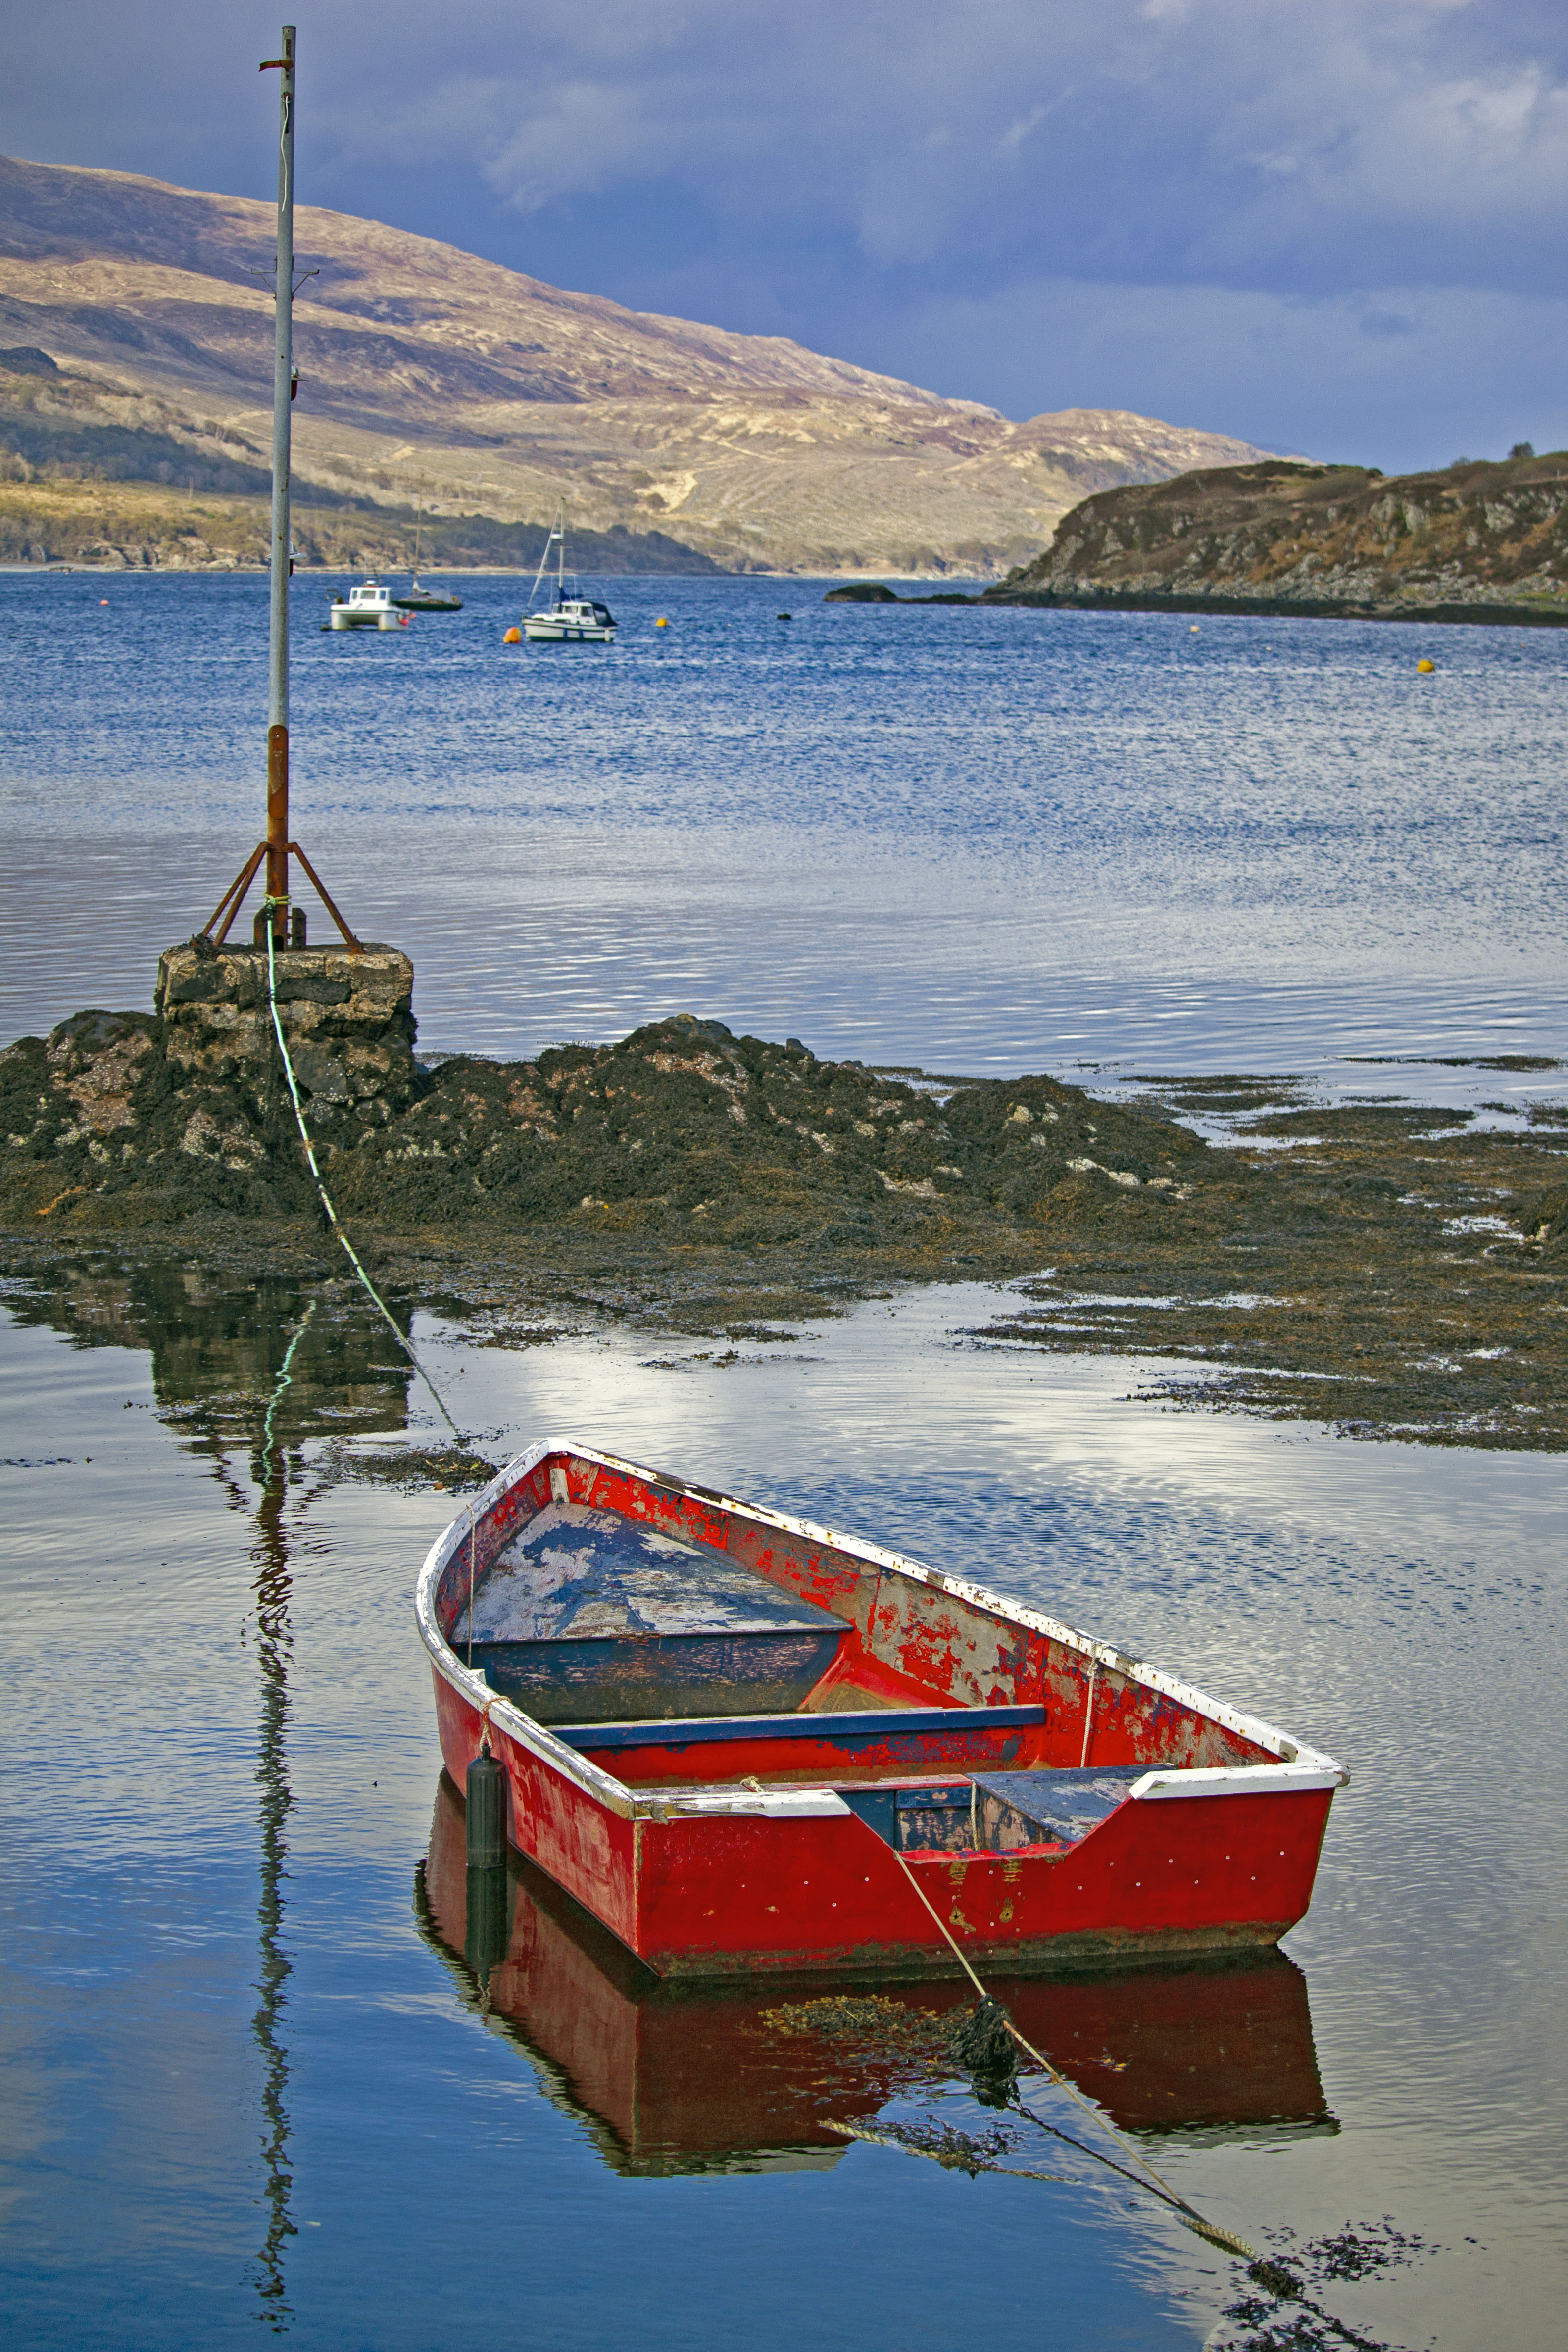 Red Boat on Water Scotland